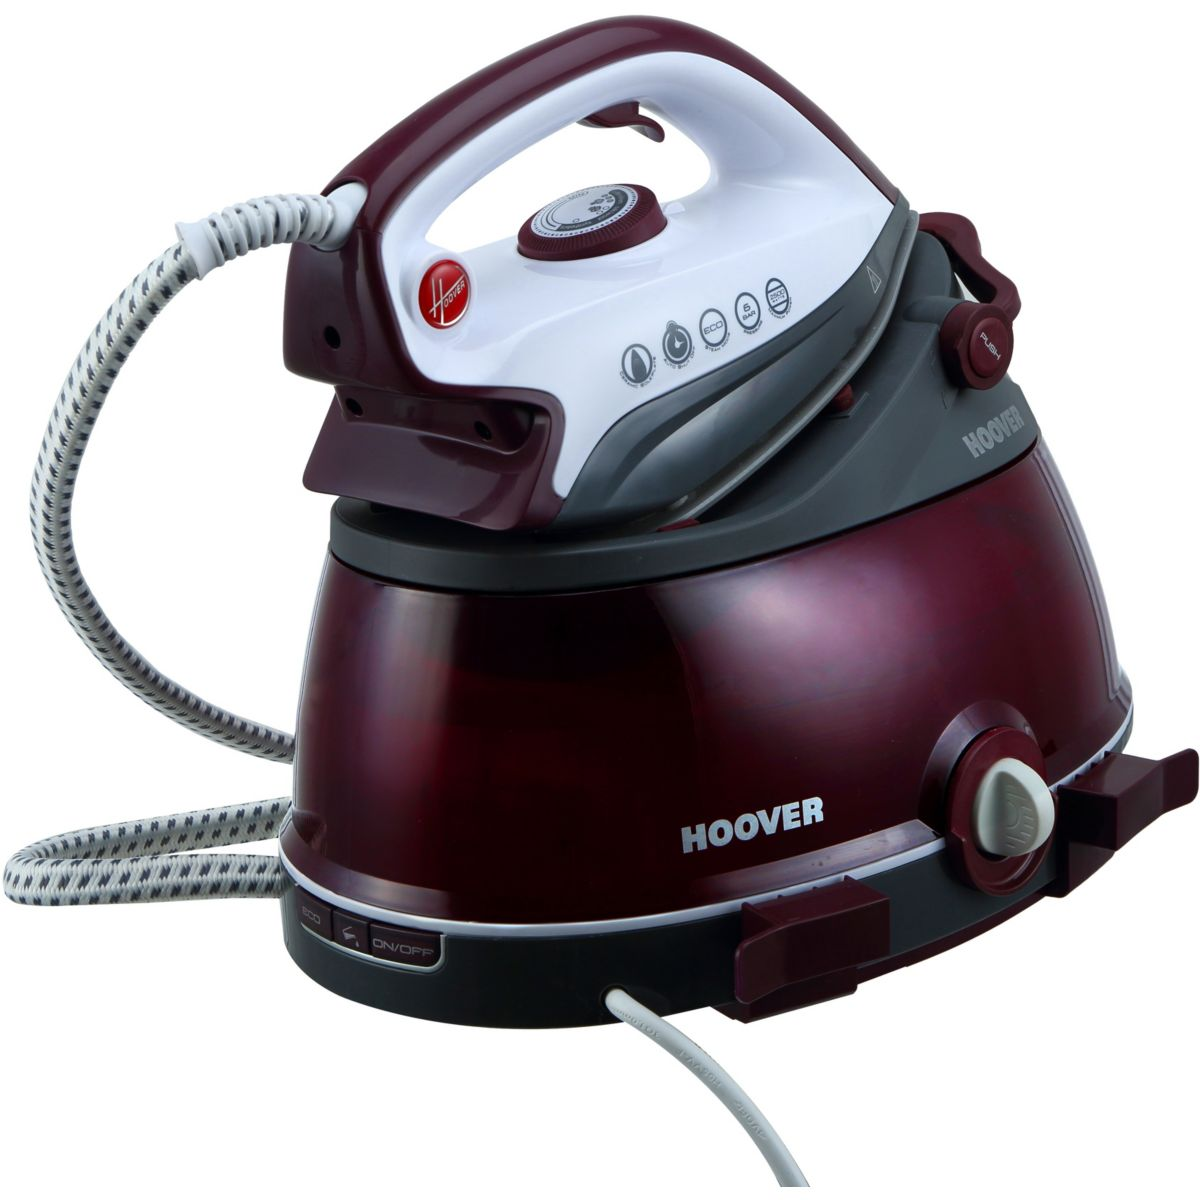 Centrale vapeur HOOVER PRB2500 IronVision (photo)